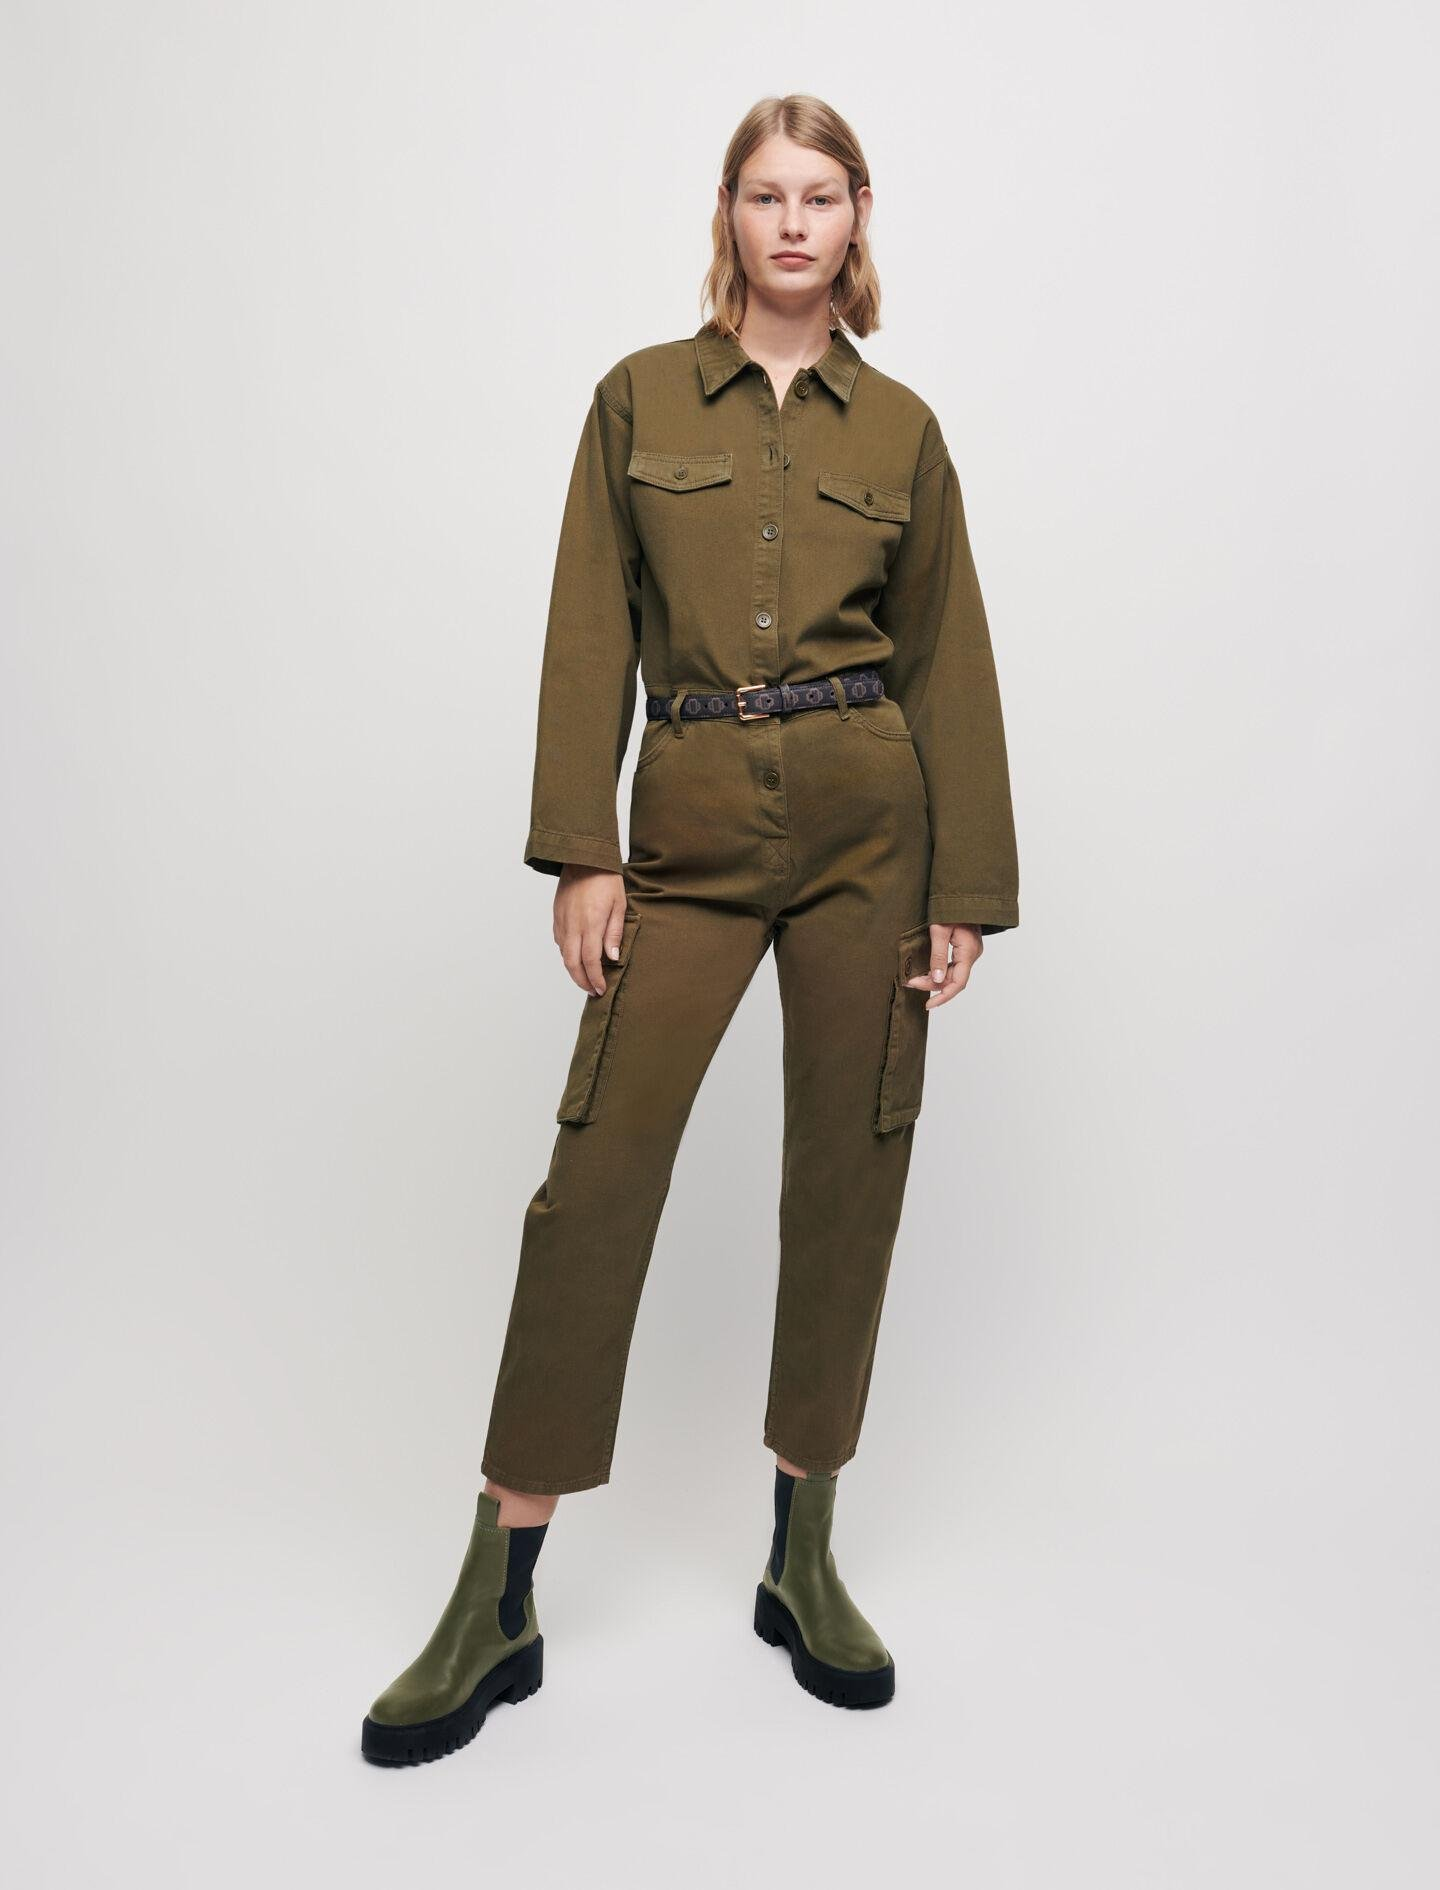 MILITARY-STYLE WORKWEAR JUMPSUIT